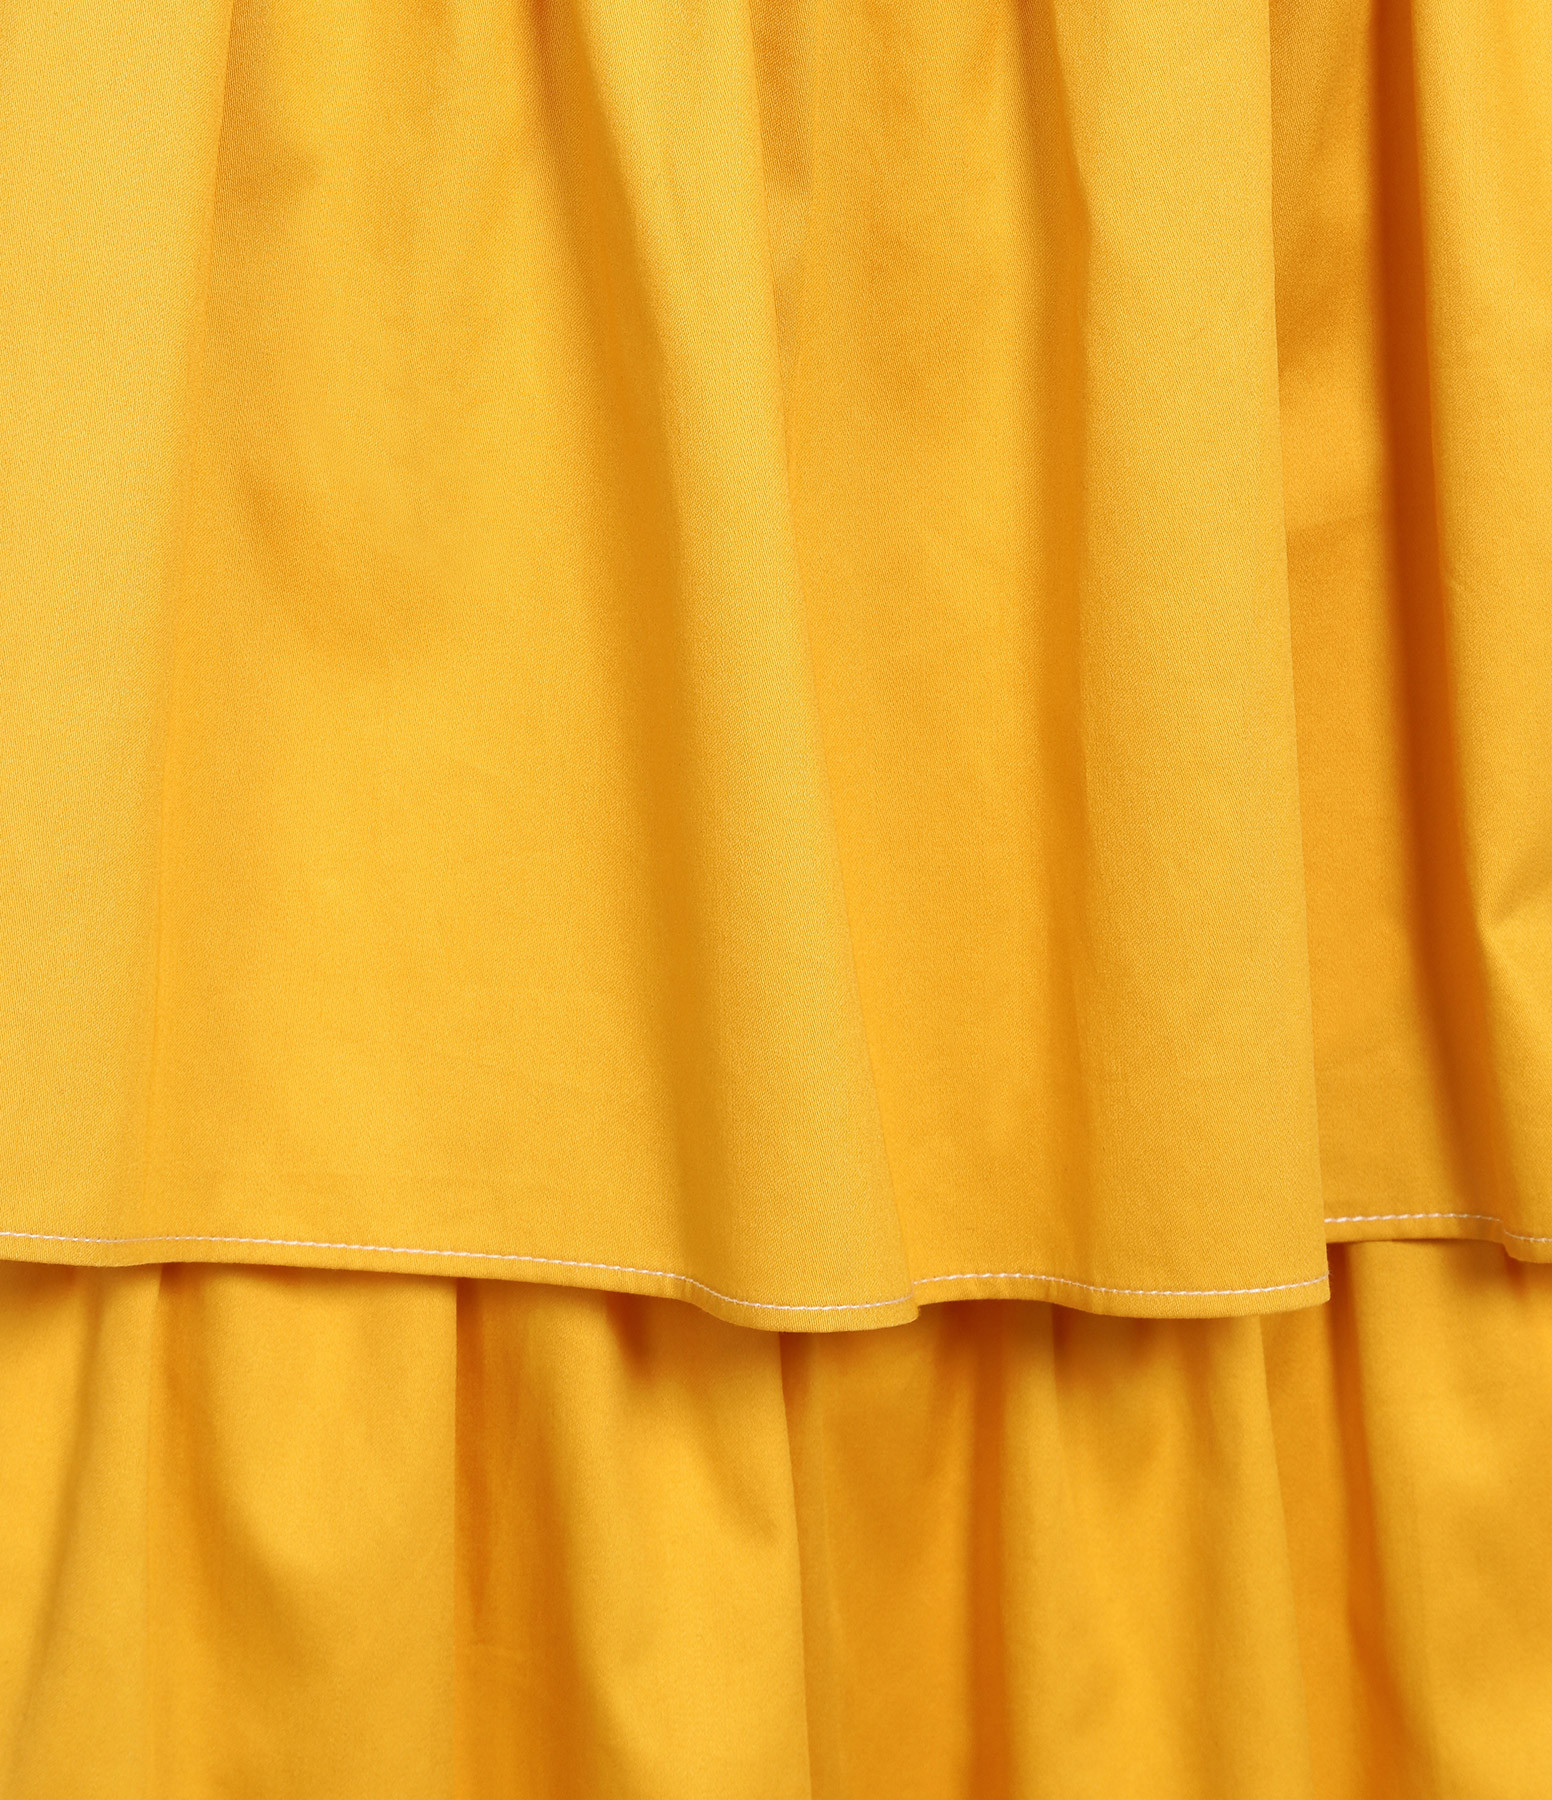 SEE BY CHLOE - Jupe Satin Coton Jaune Citron